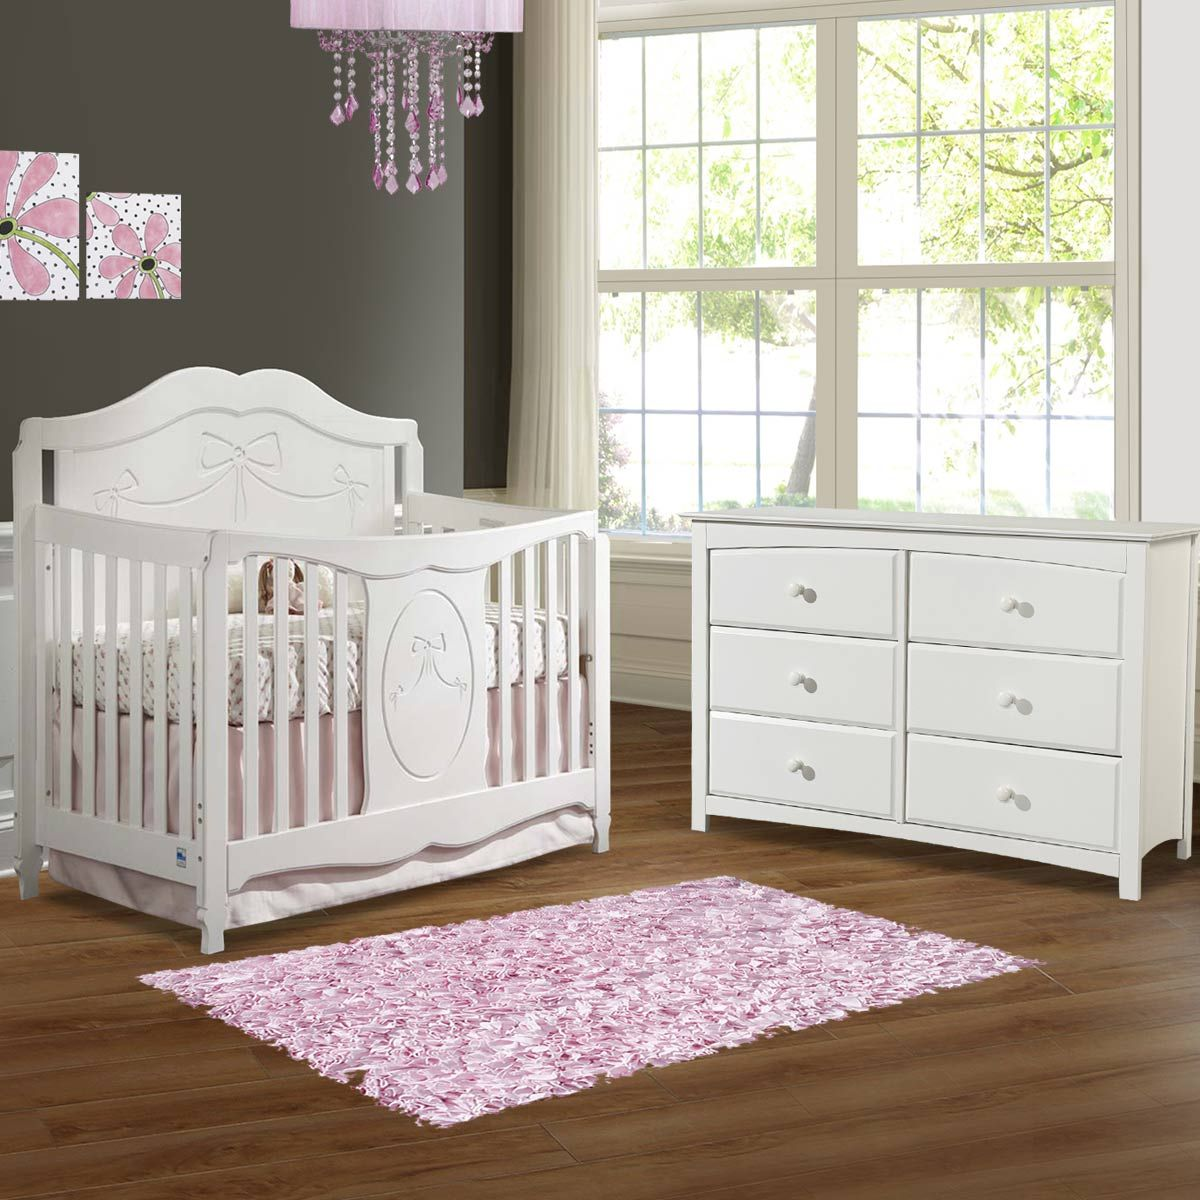 Ordinaire Storkcraft Baby Furniture   Most Popular Interior Paint Colors Check More  At Http://